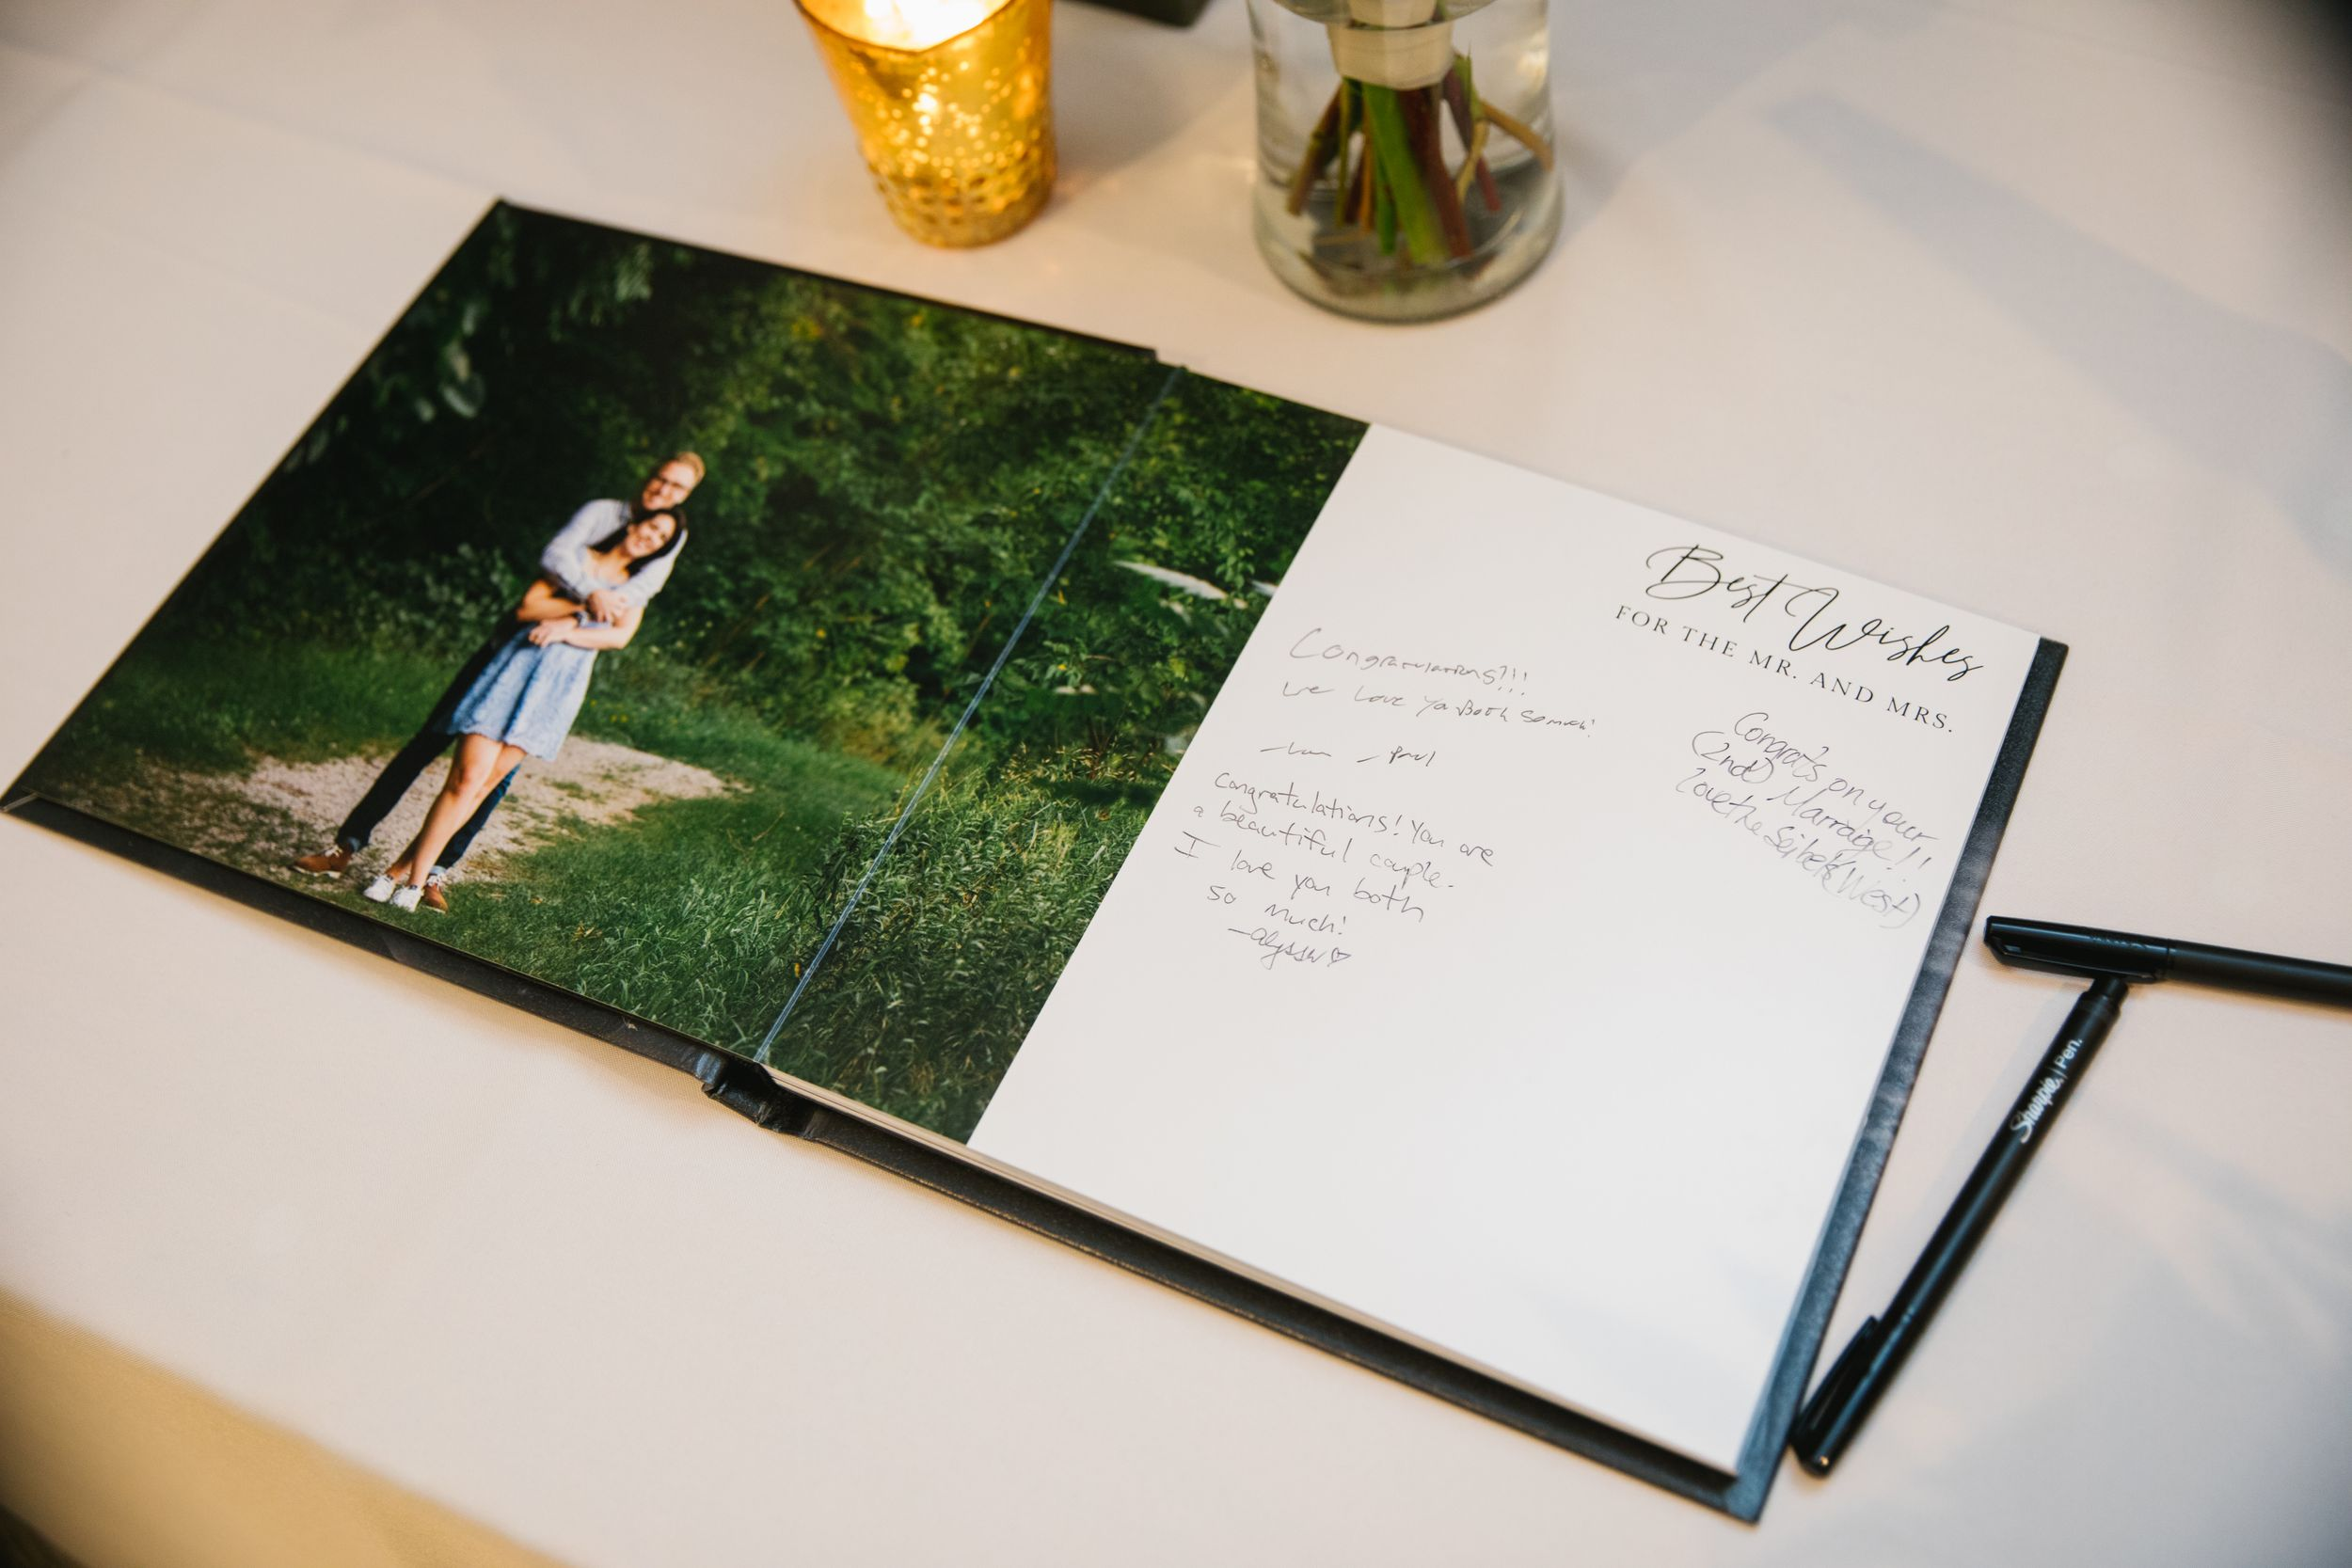 close up of guest signing book with engagement photo and congratulations